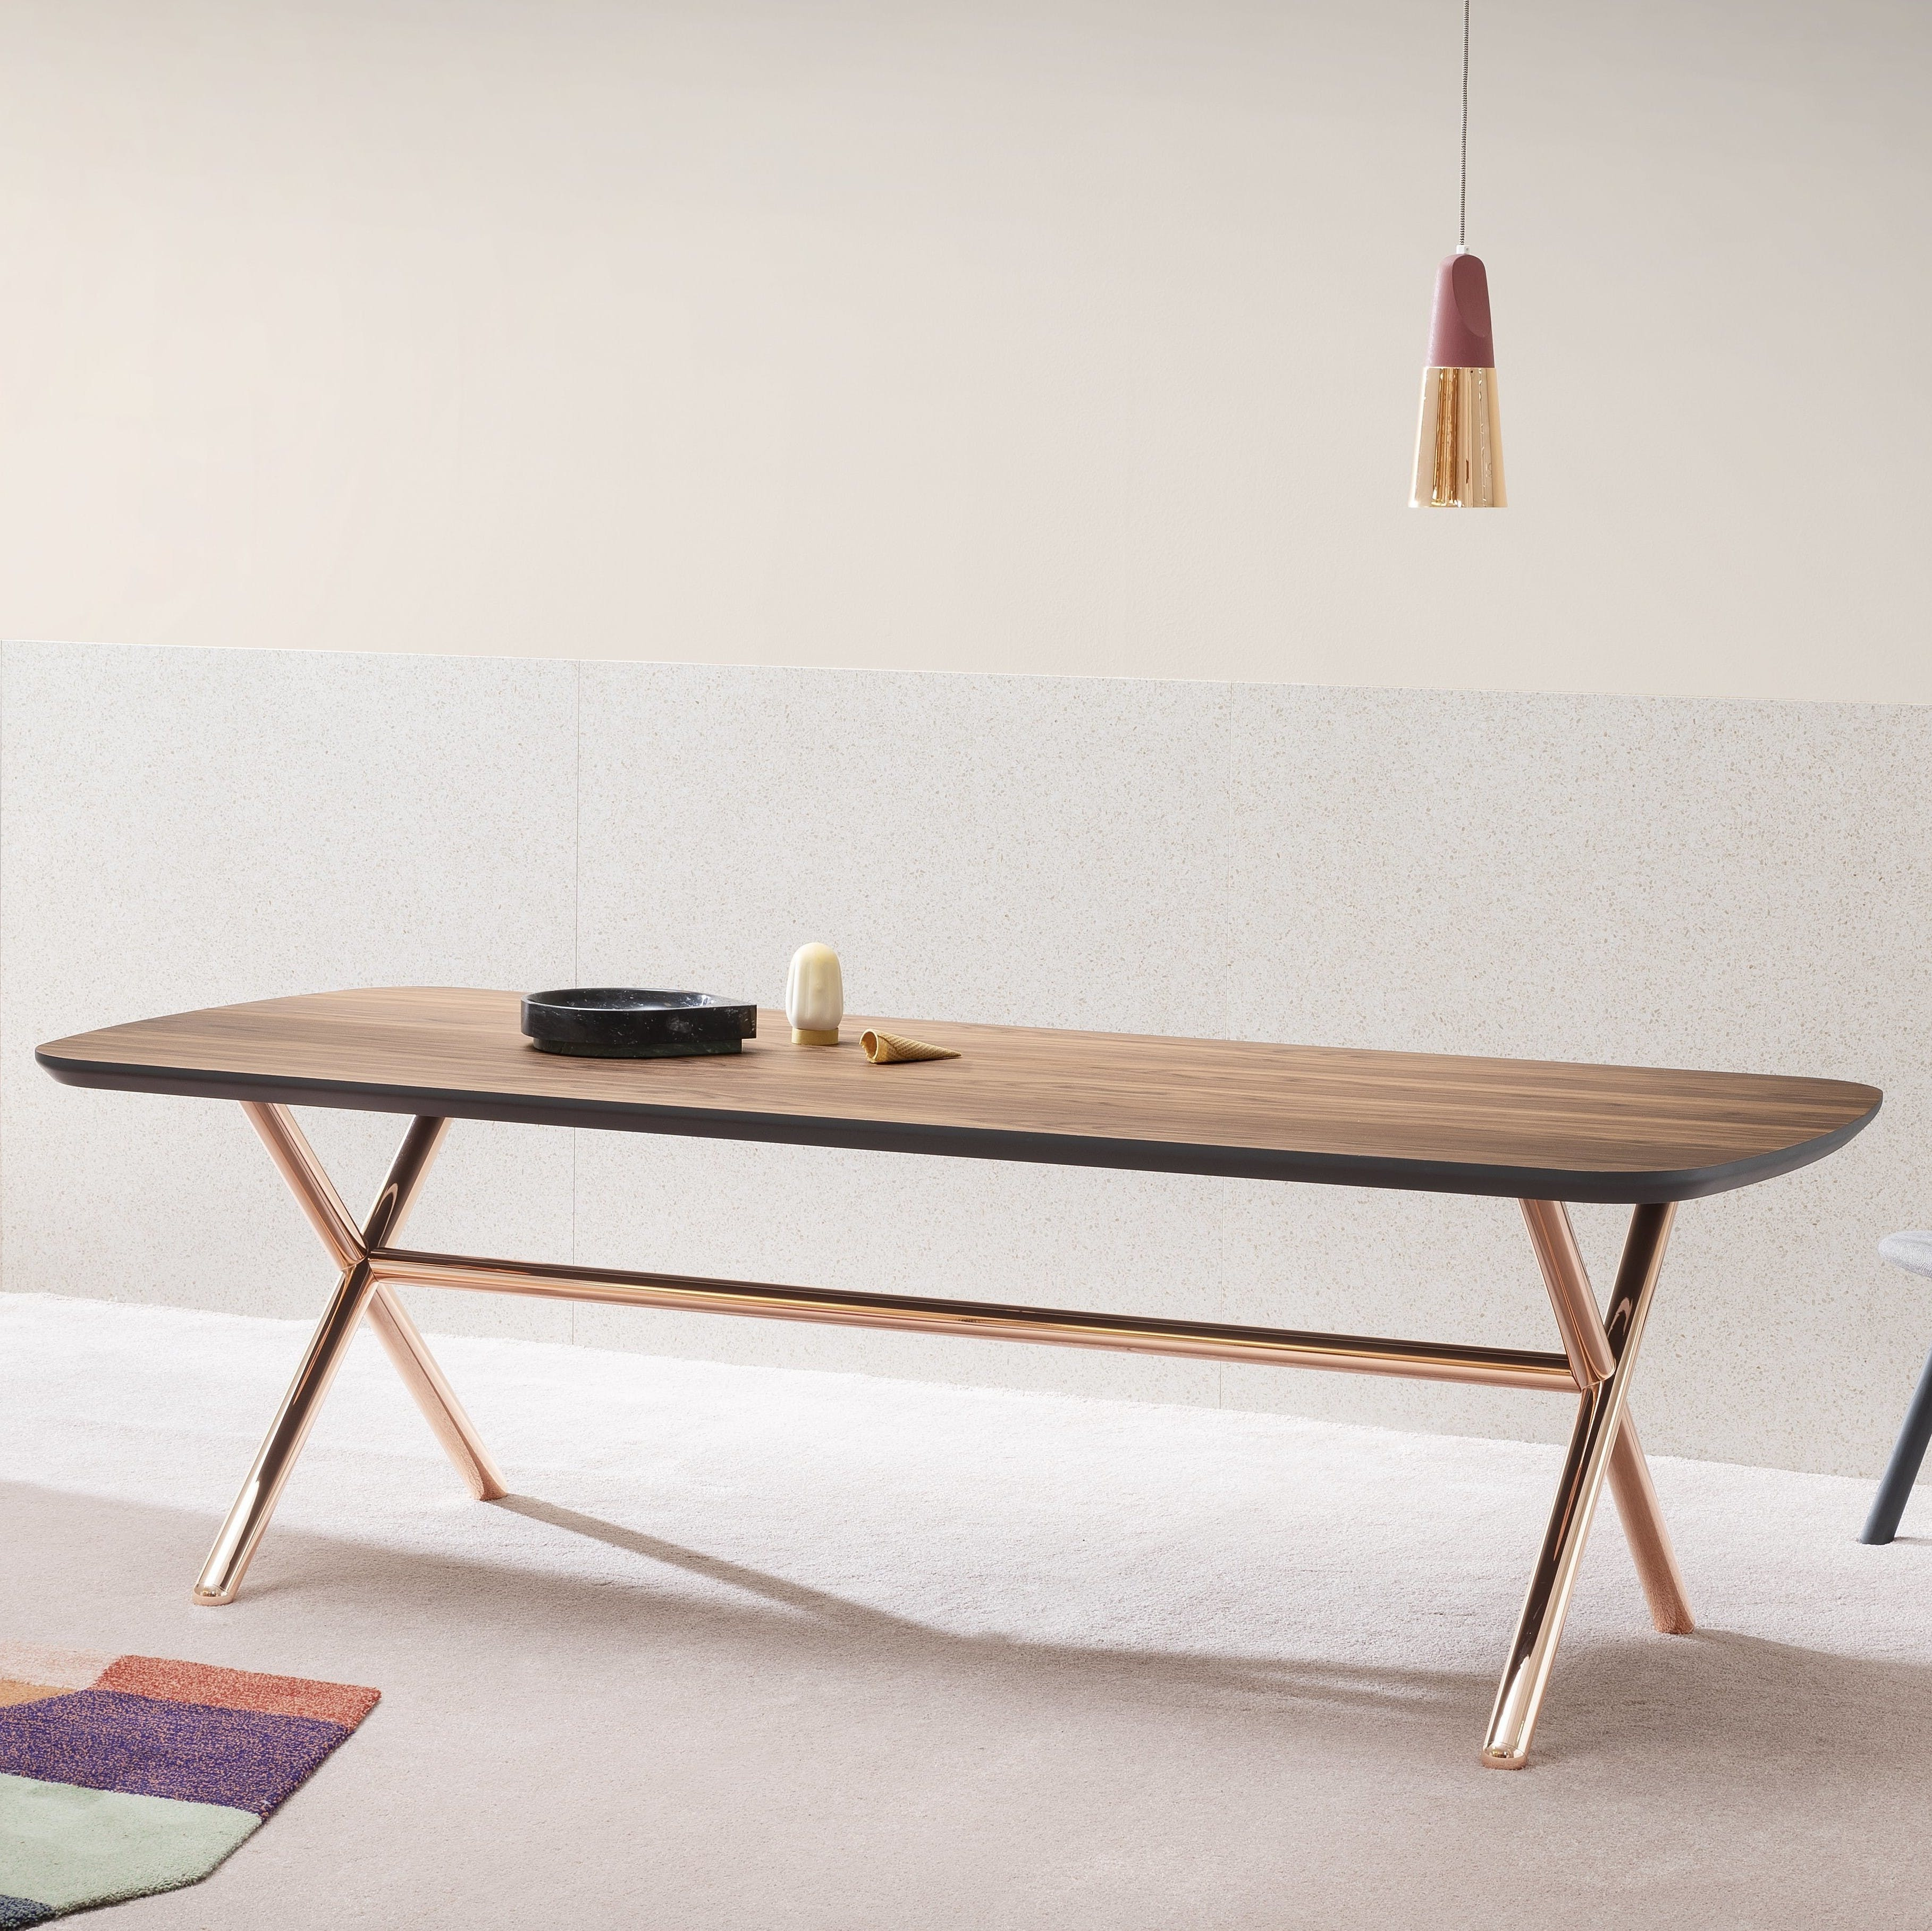 Phase Design Emile Table Brown Haute Living 190111 180853